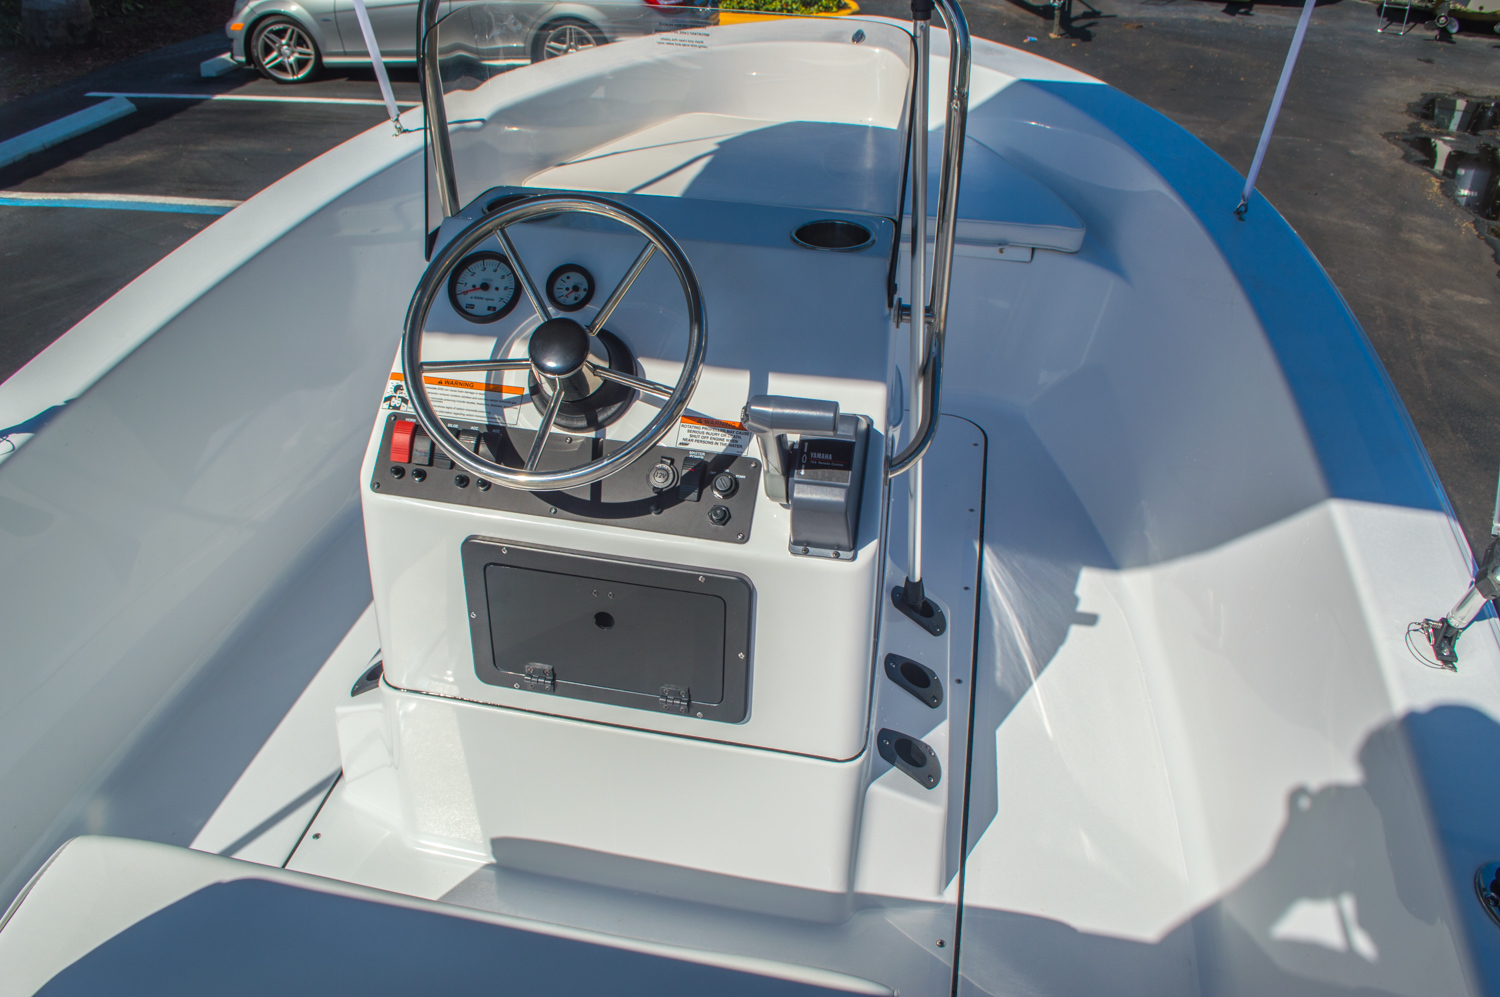 Thumbnail 26 for New 2016 Sportsman 17 Island Reef boat for sale in West Palm Beach, FL